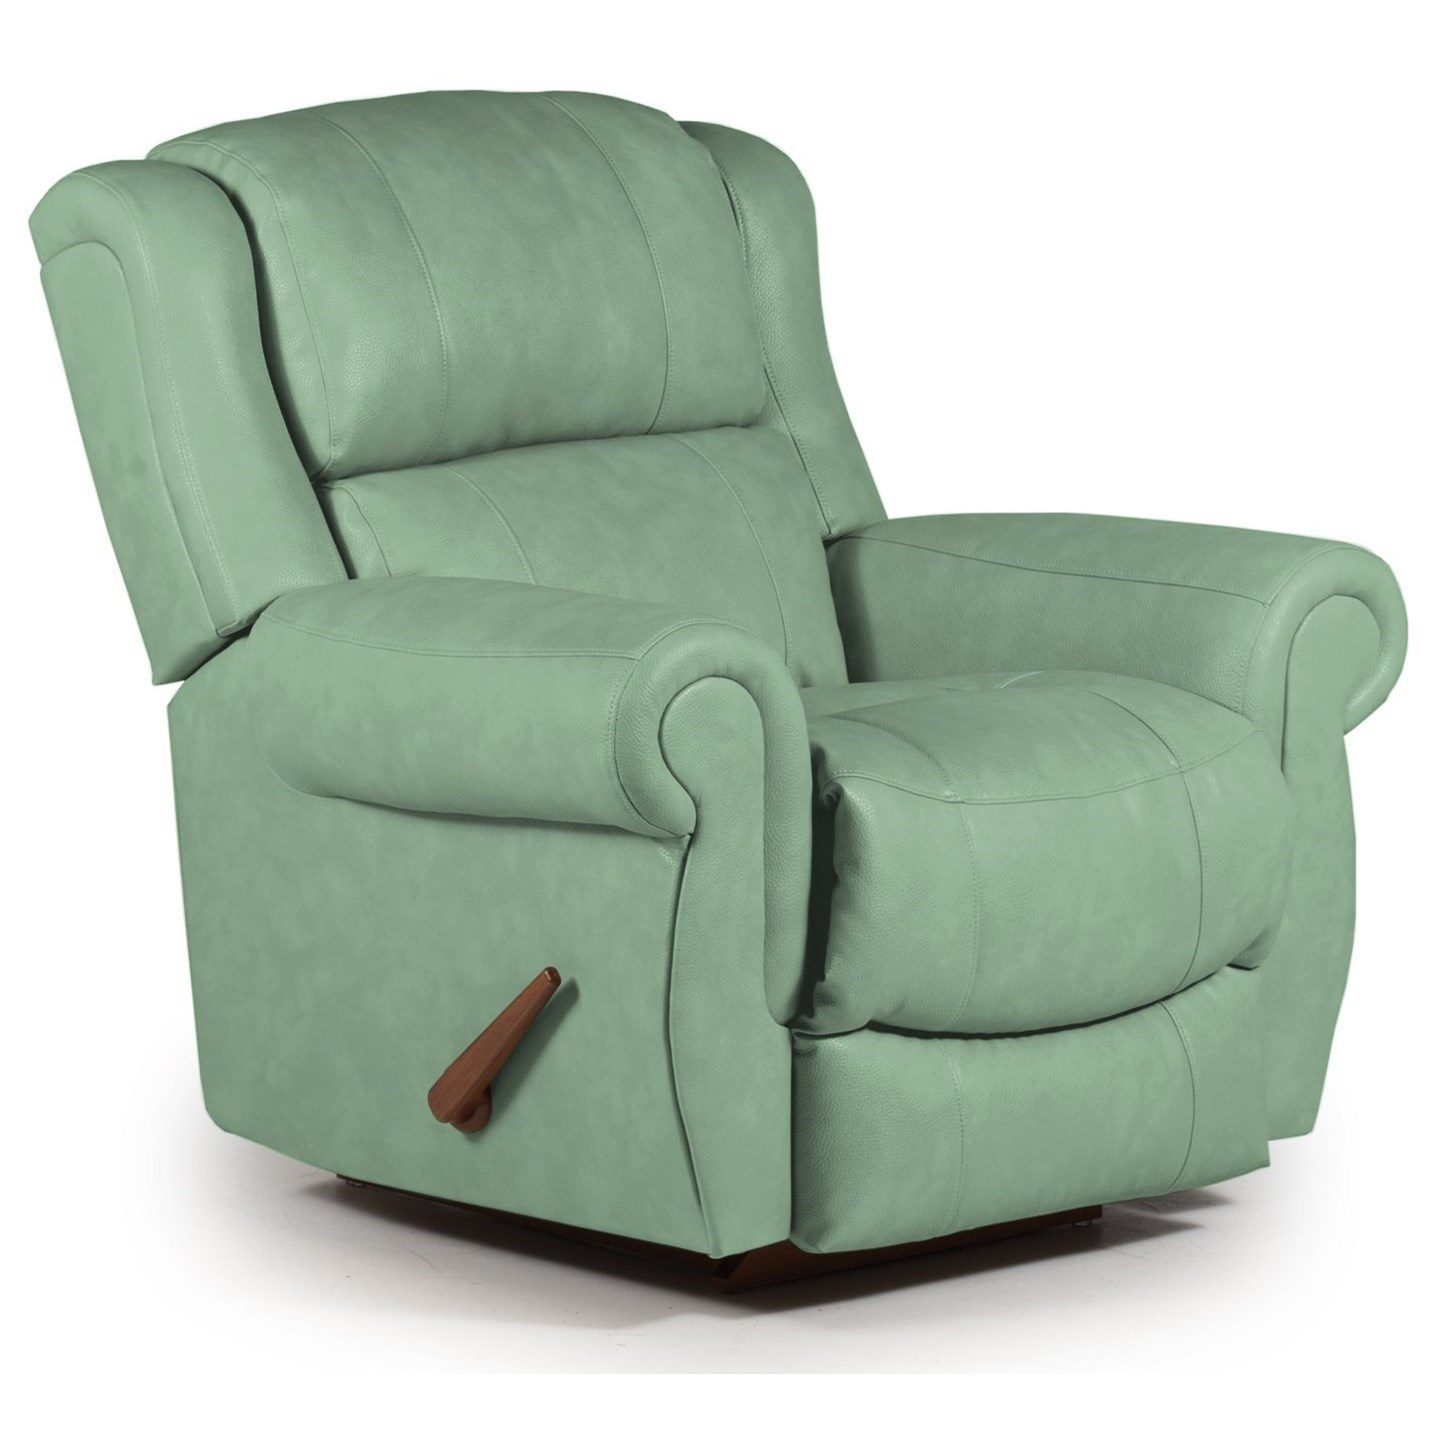 Best Home Furnishings Recliners - Medium Terrill Swivel Glider Recliner - Item Number: -1104597348-28592U